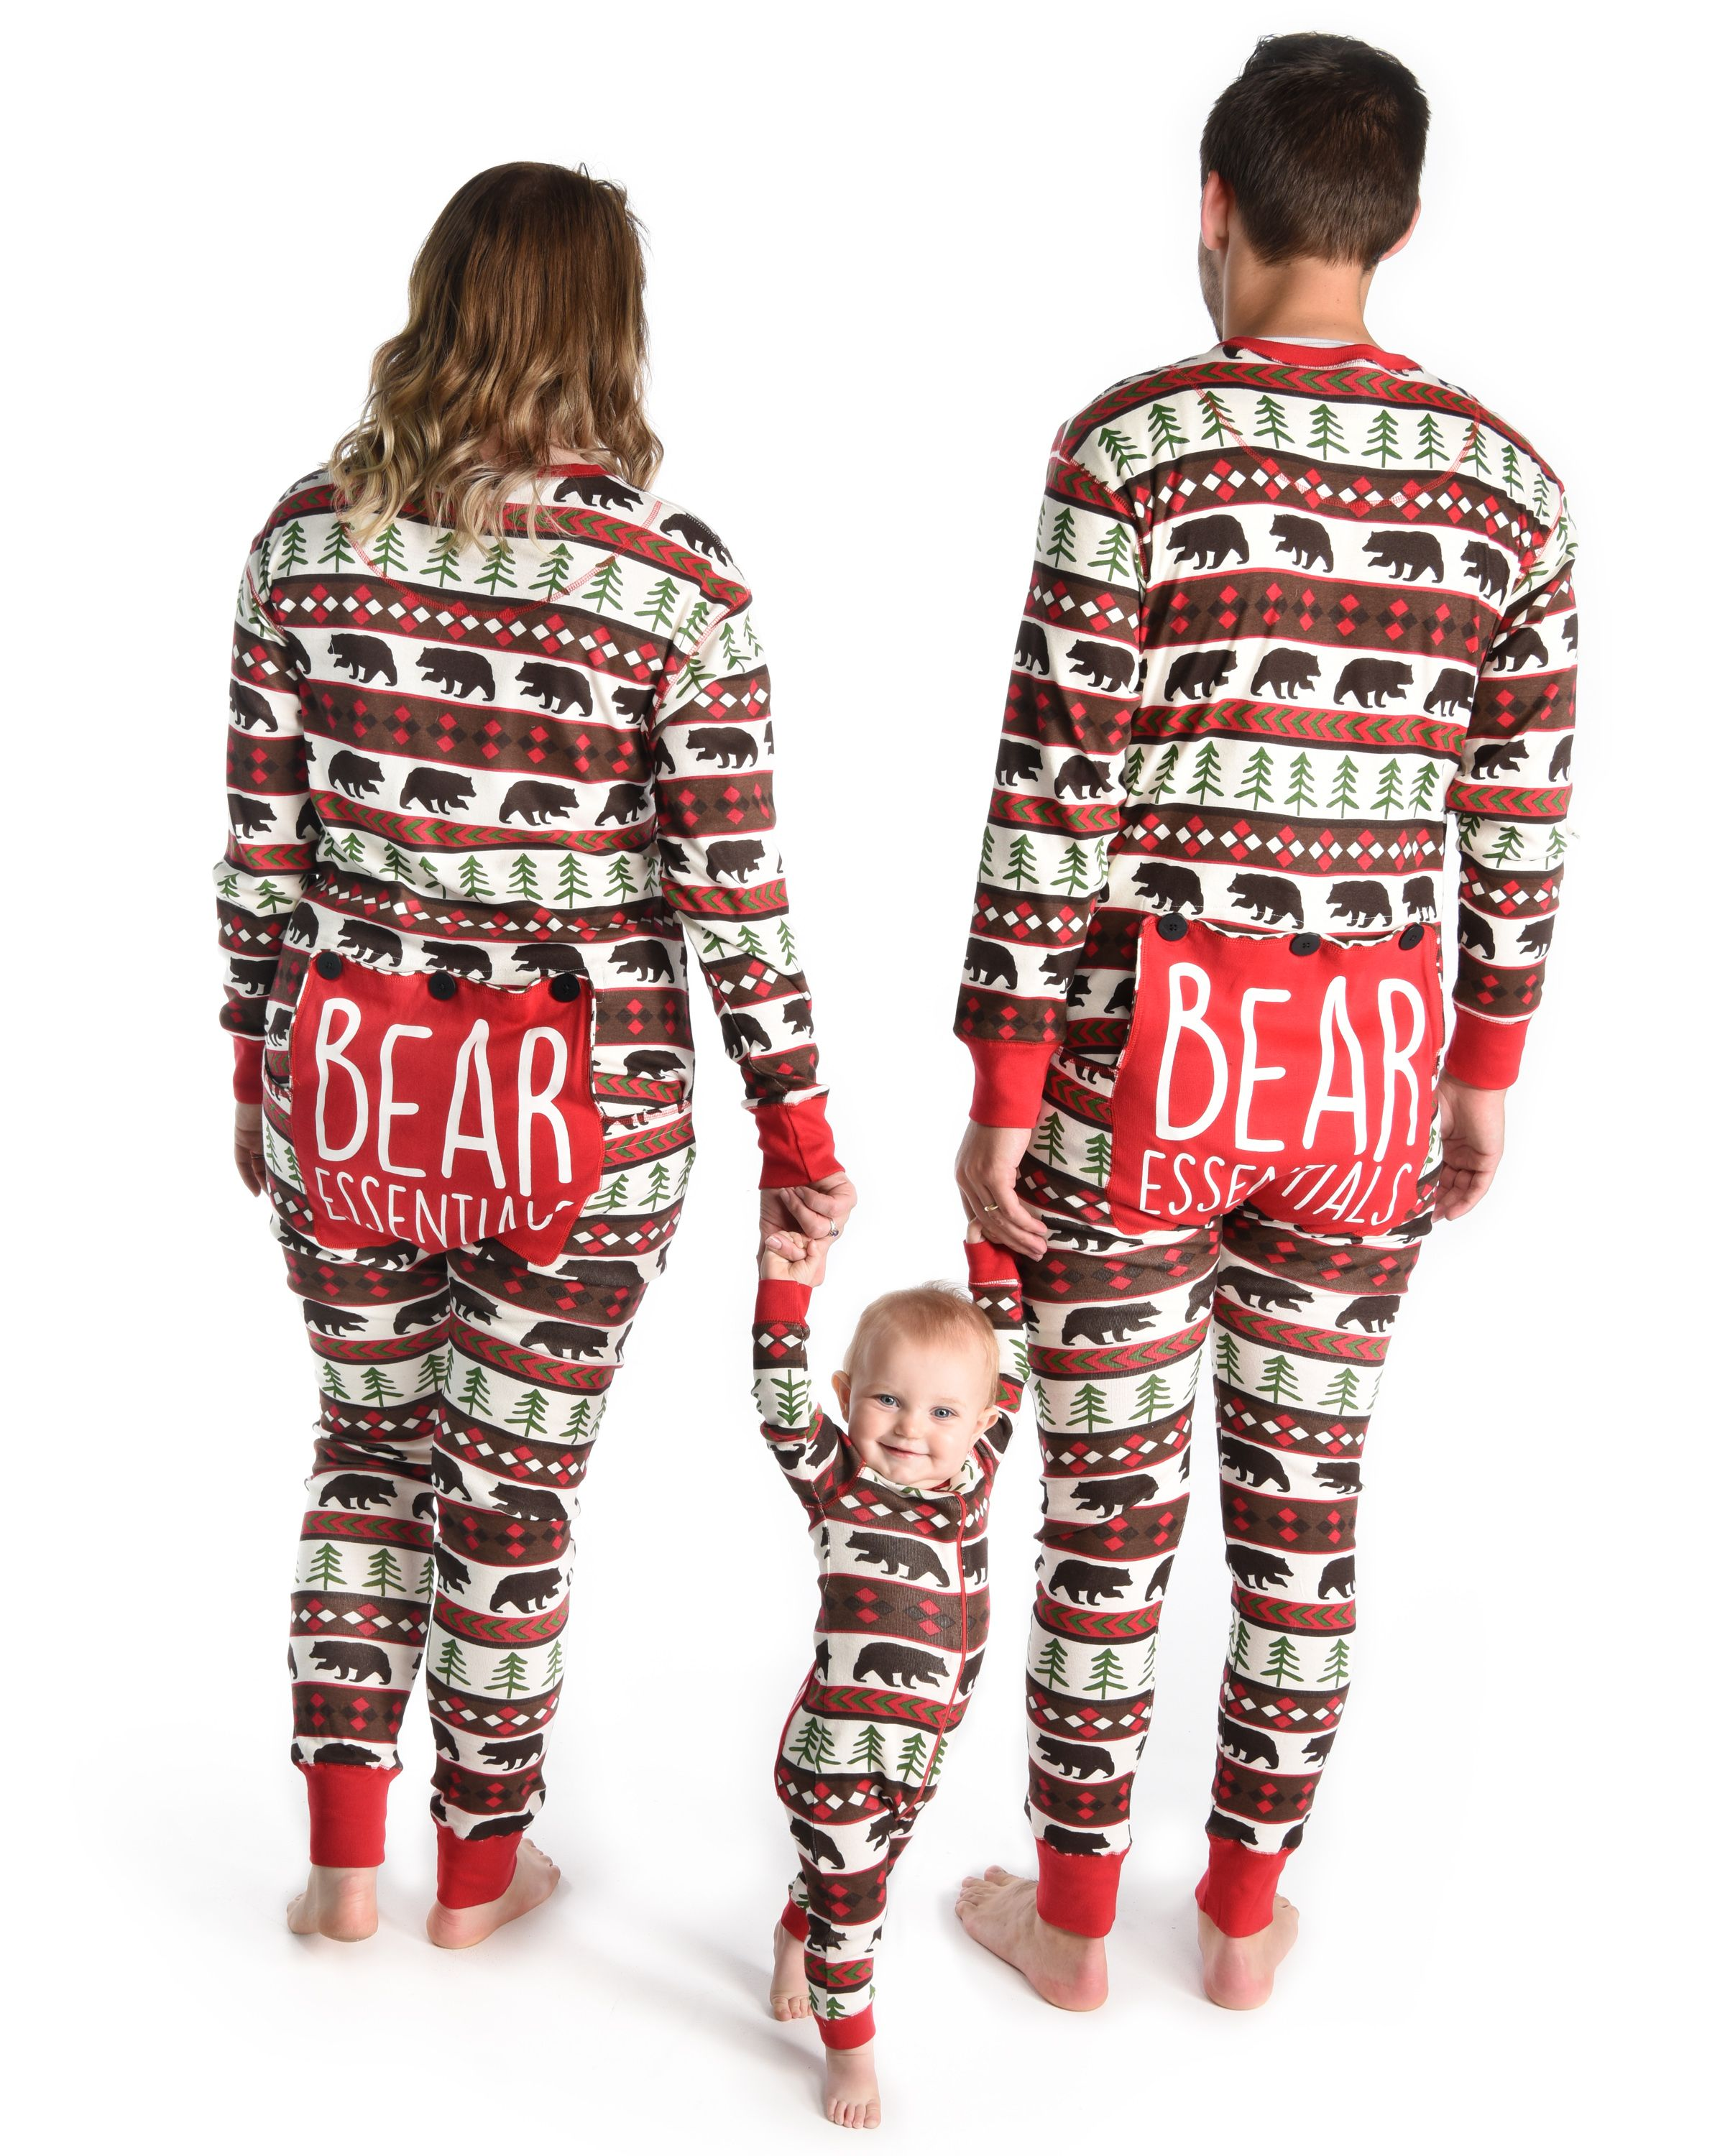 c172275eecd Matching Pajamas!!! Fun pajama sets for the whole family! Get together with coordinating  pjs for every men